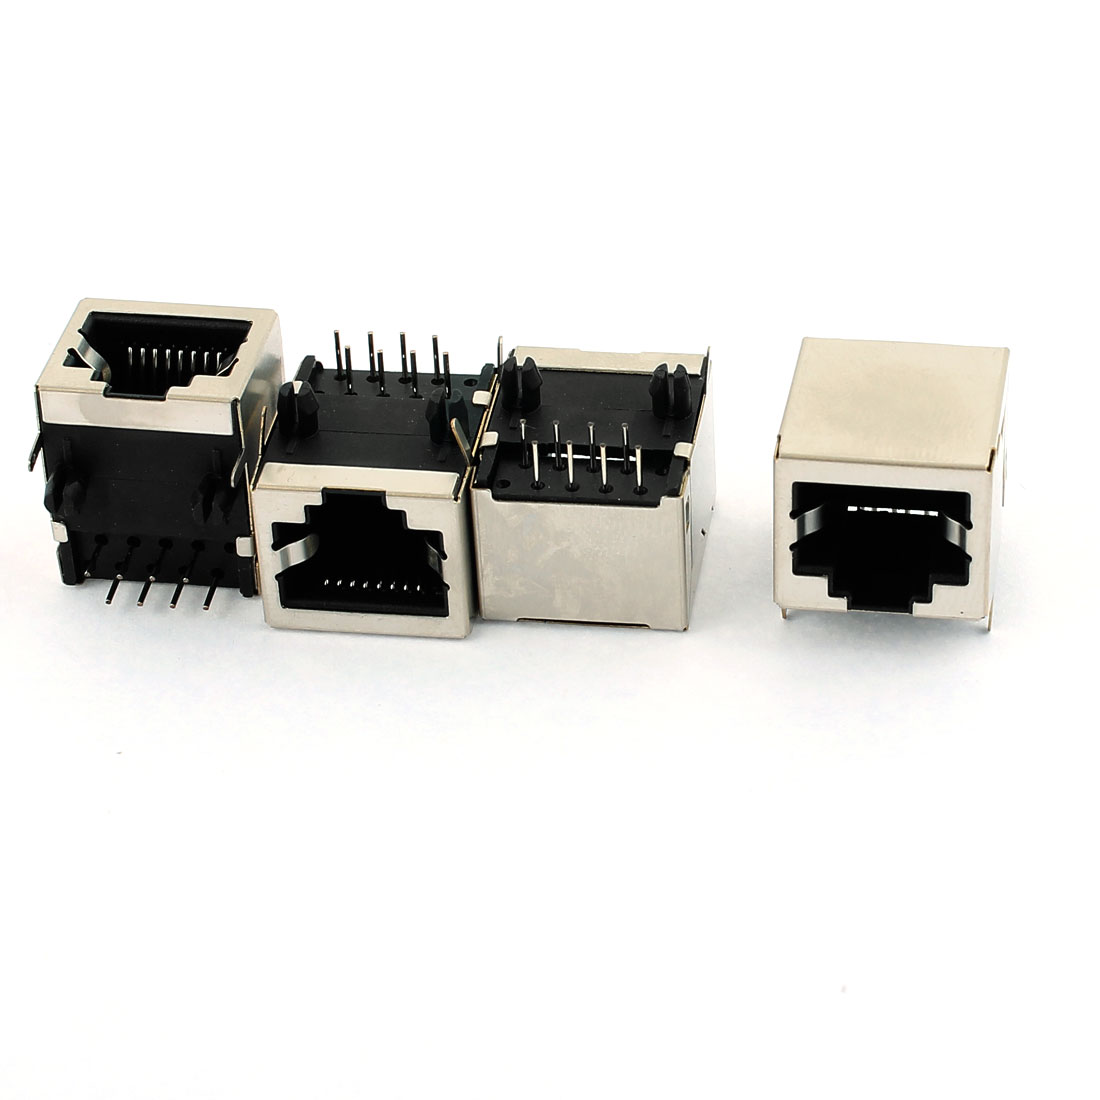 4 Pcs PCB Mount 8P8C Female Network Module Connector Socket Jacks